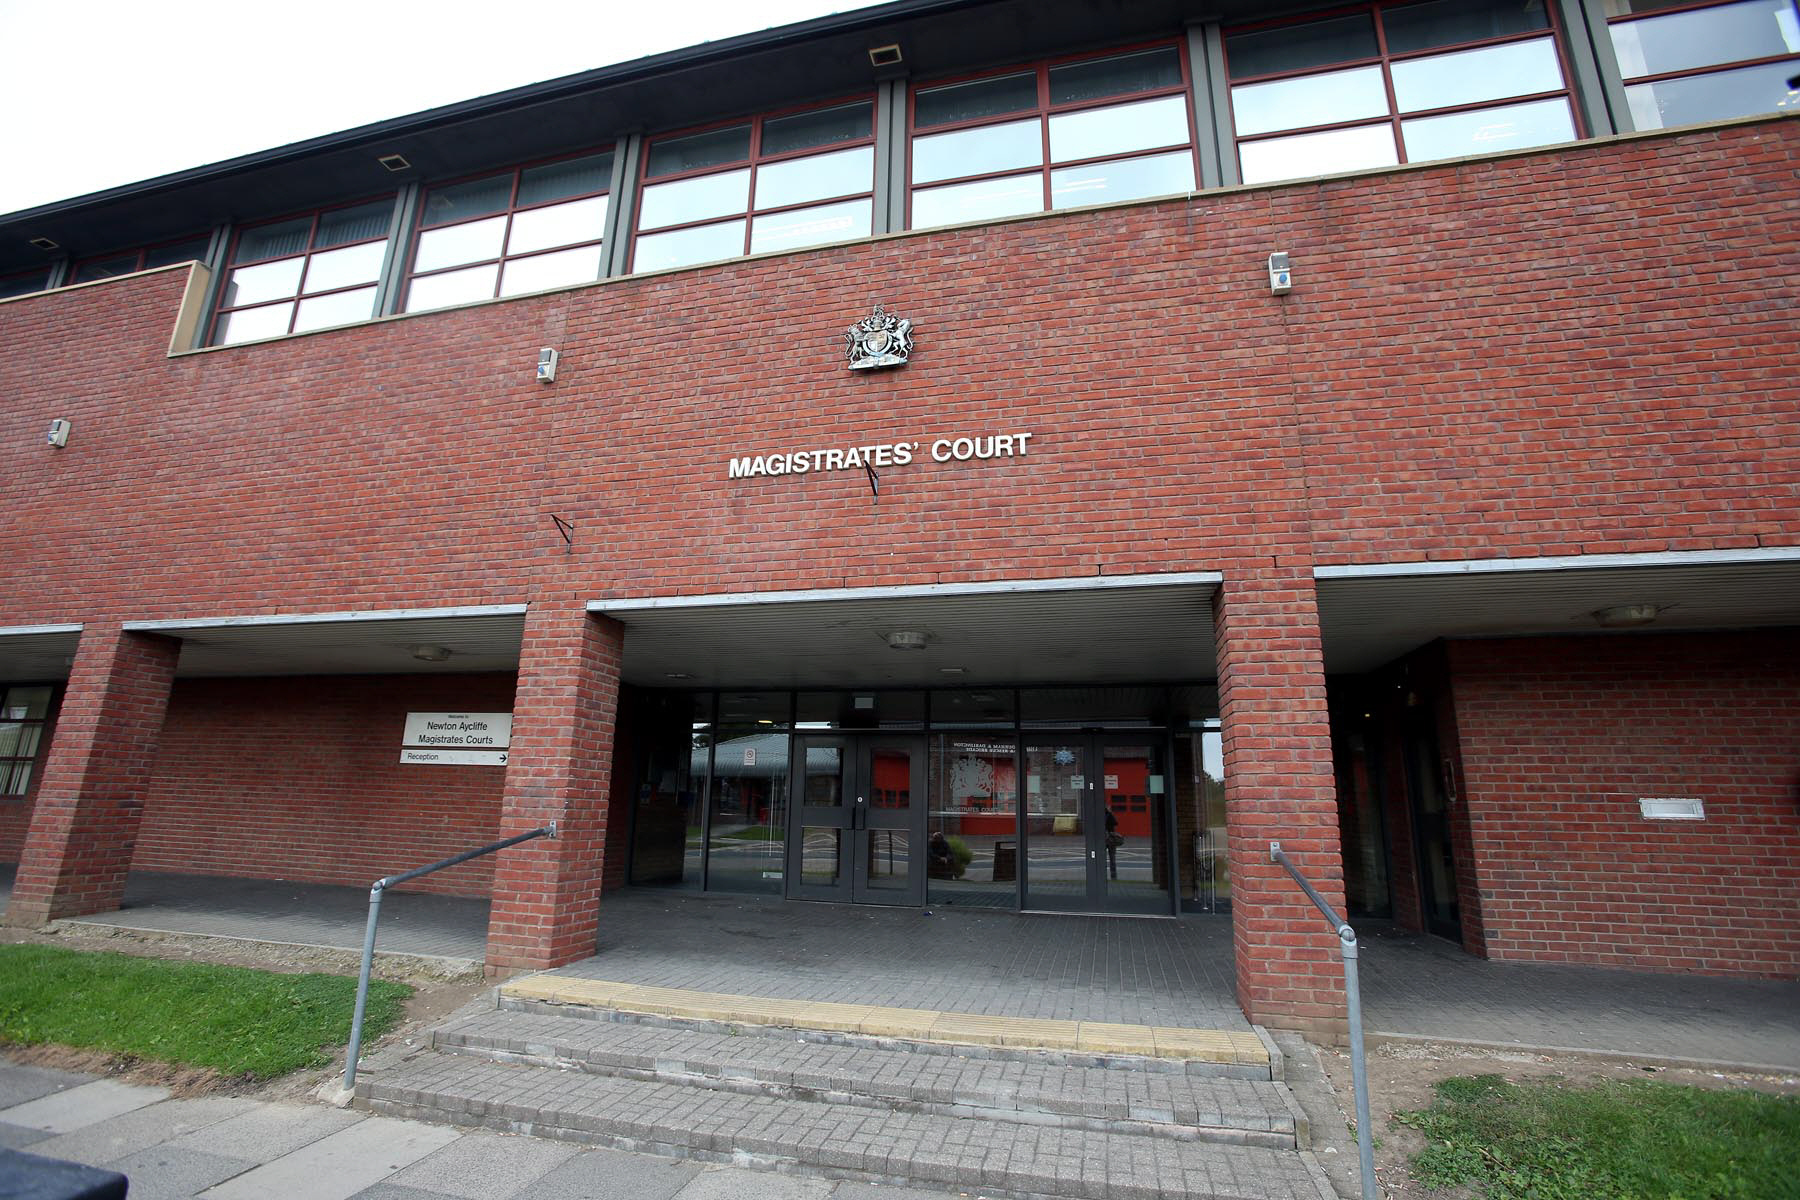 KNIFE CRIME: Spennymoor man Matthew O'Dowd admitted possessing an offensive weapon and using threatening behaviour when he appeared at Newton Aycliffe Magi